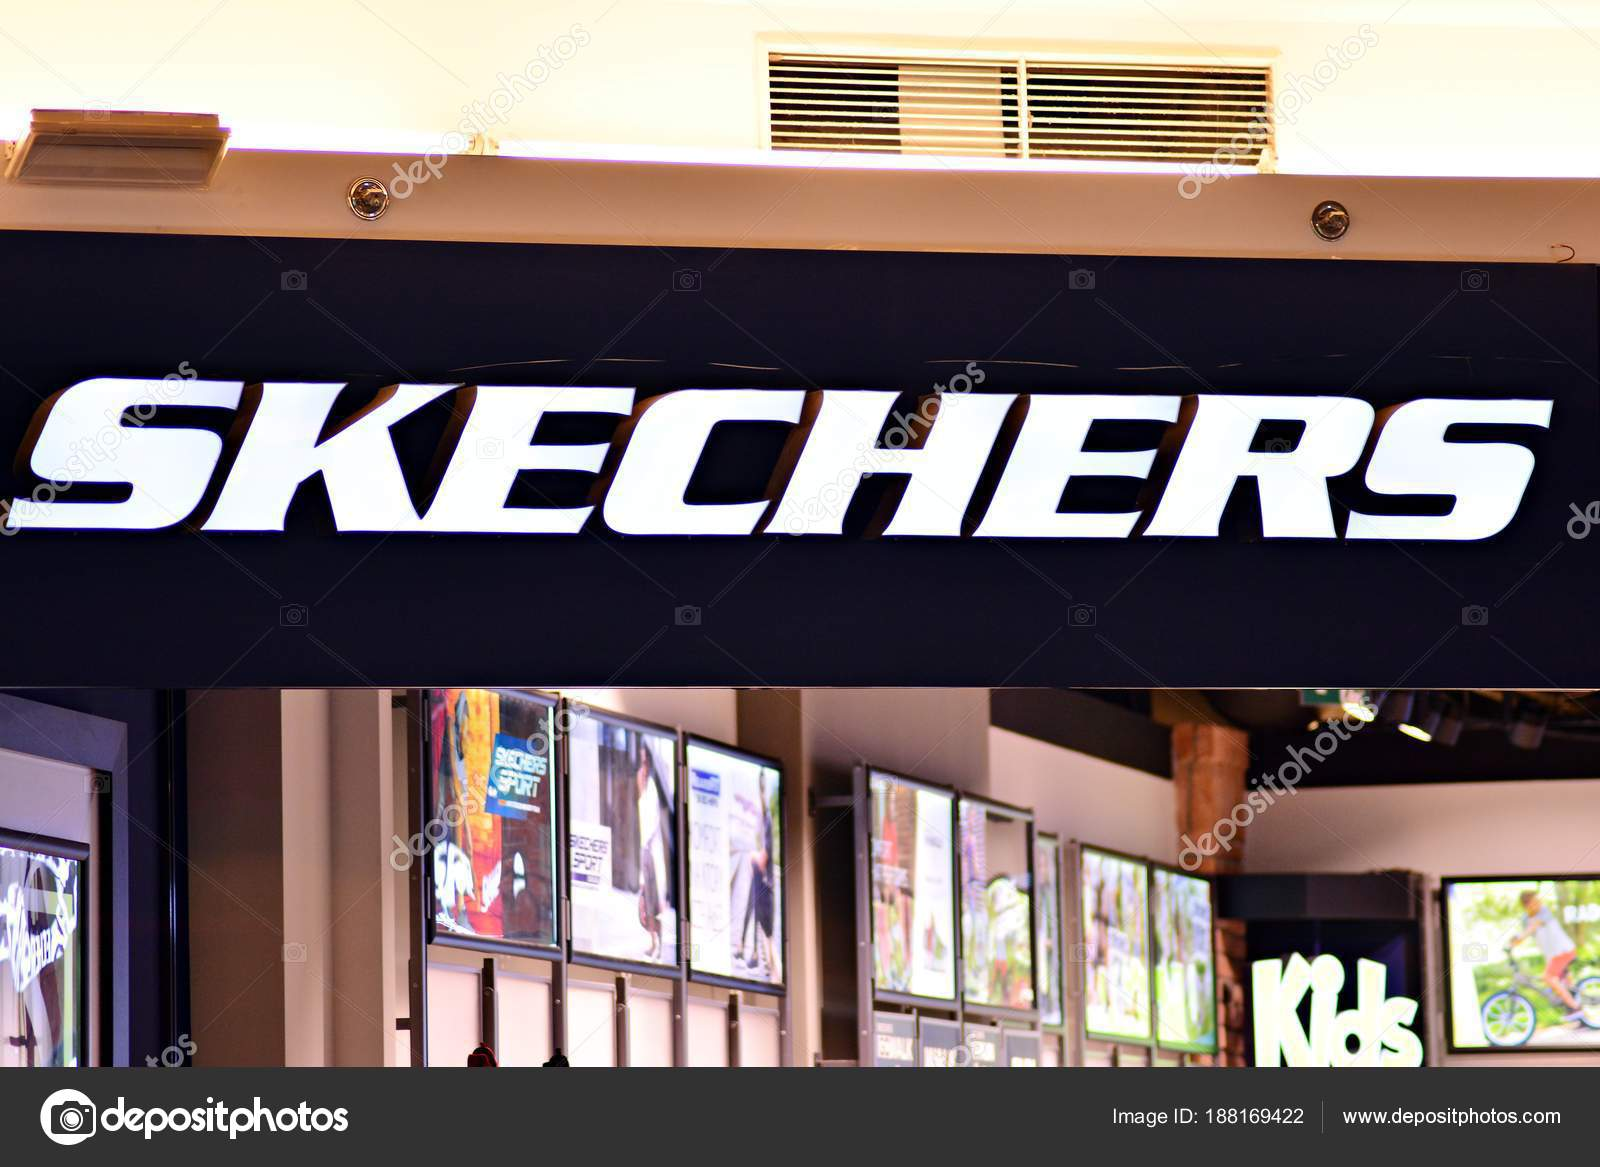 79b1284c41ea Warsaw Poland March 2018 Sign Skechers Company Signboard Skechers — Stock  Photo